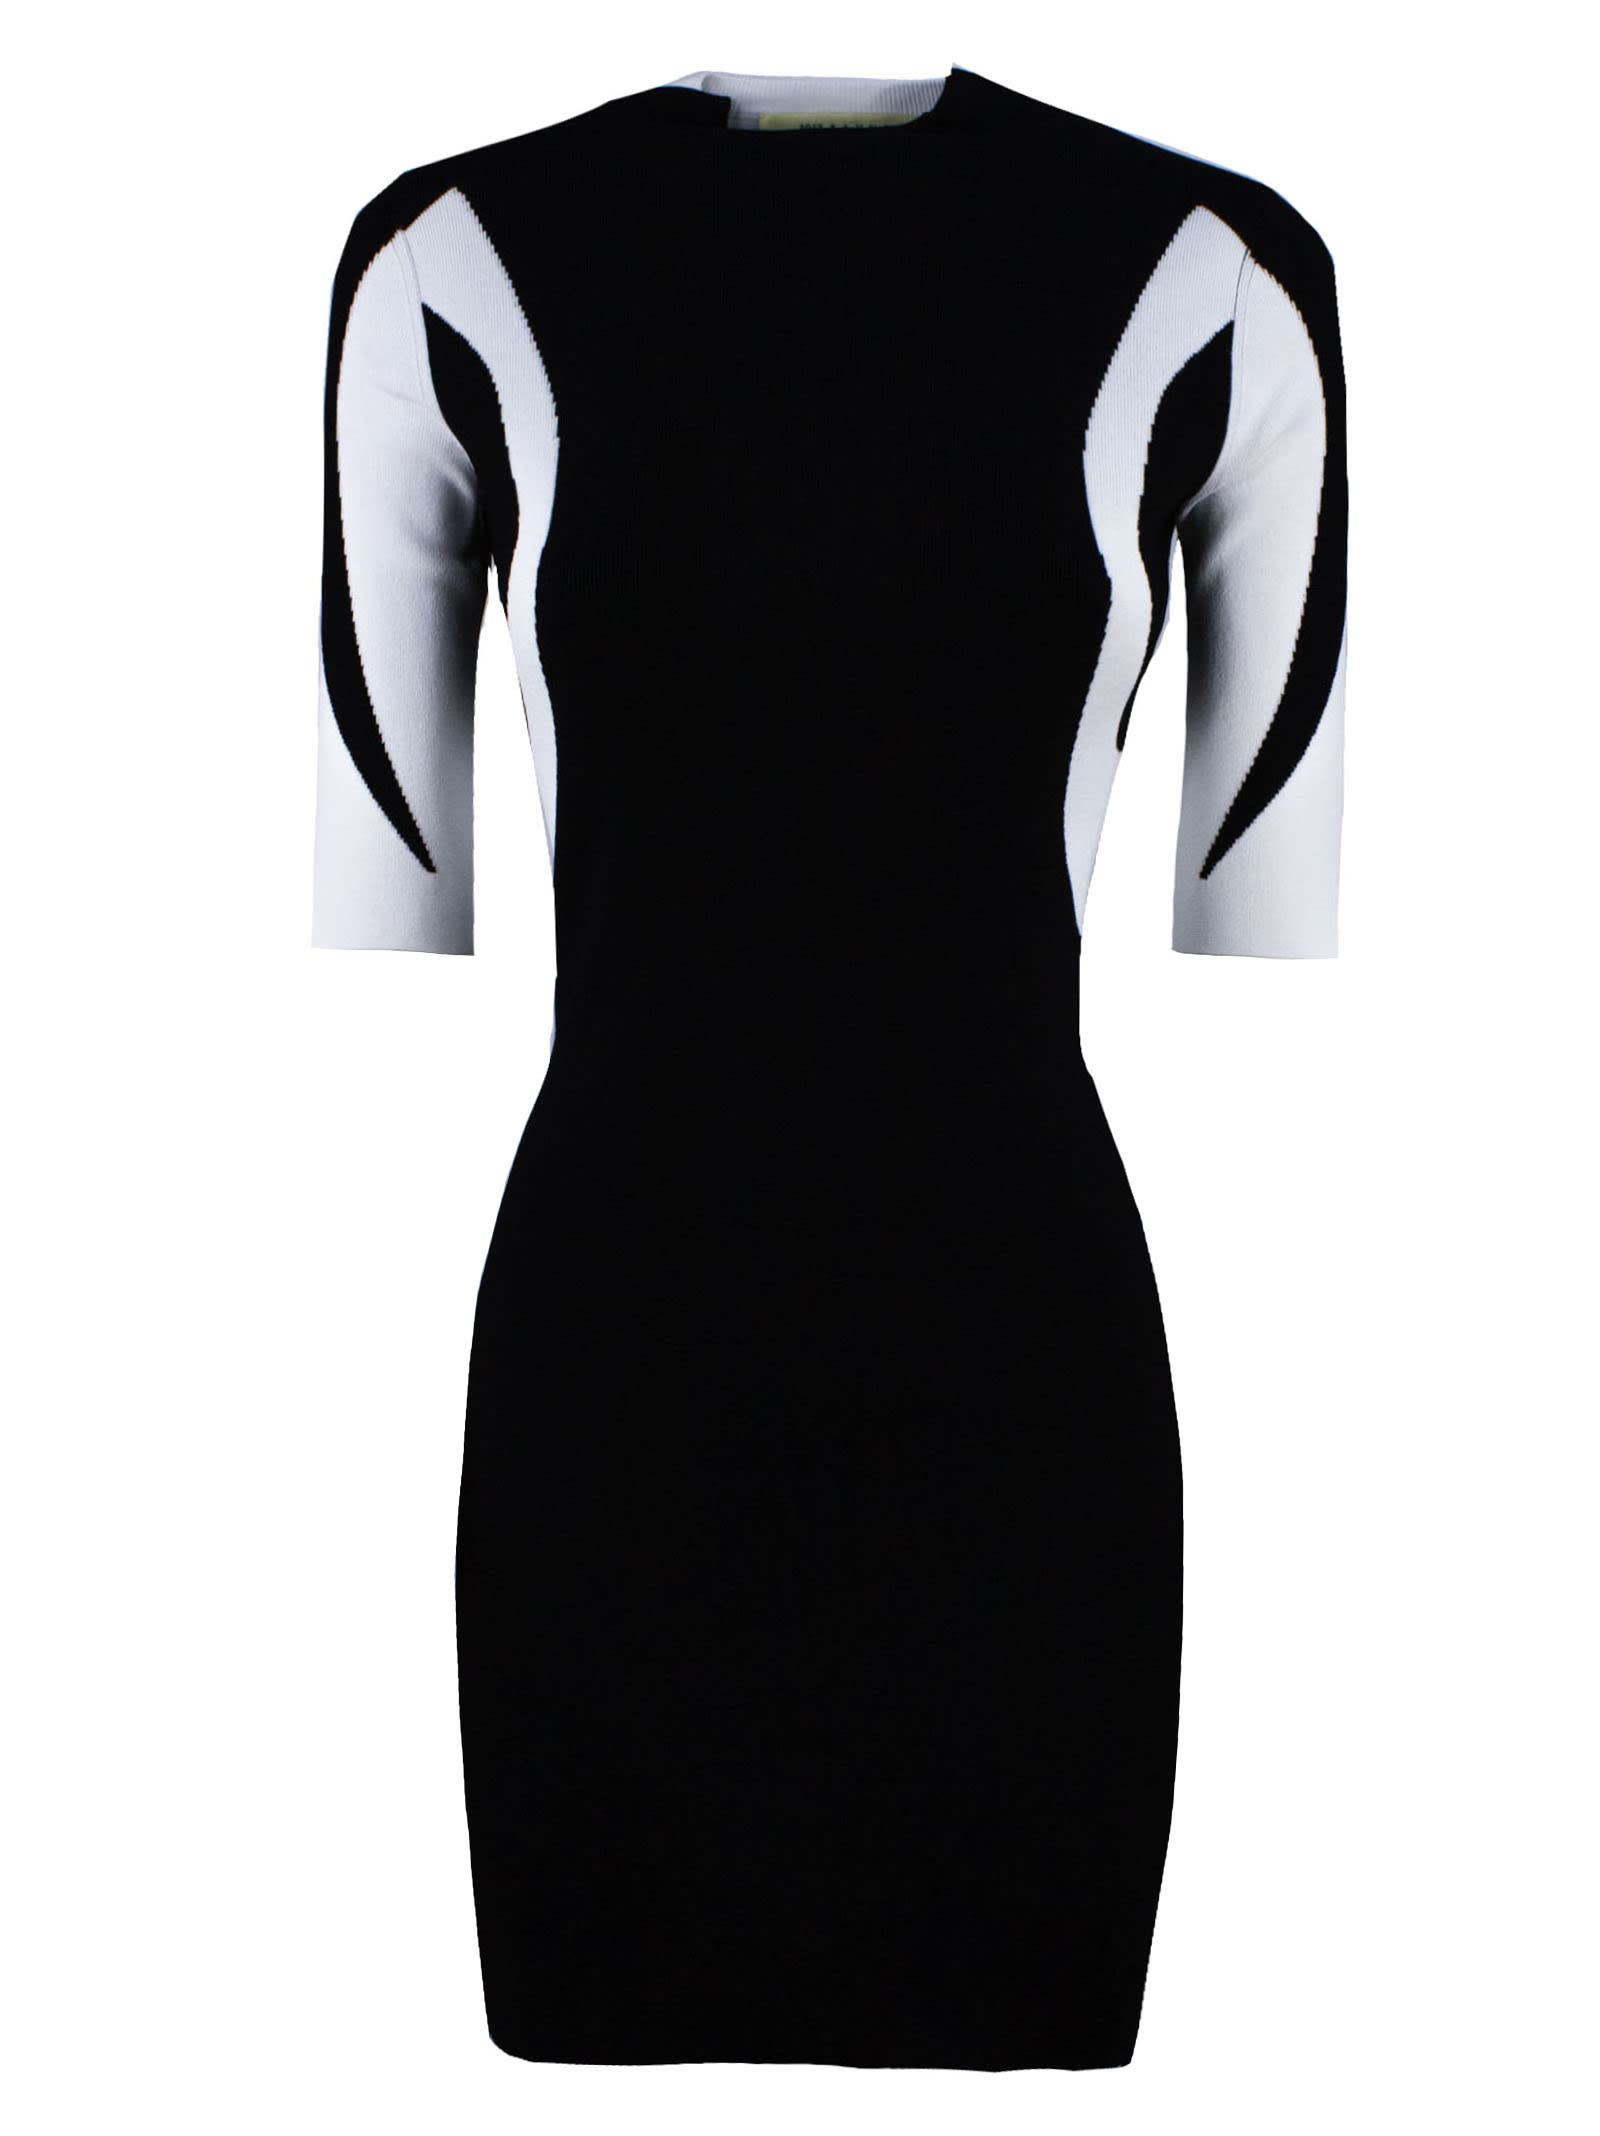 Buy 1017 ALYX 9SM Black Rib Knit Turtleneck Dress online, shop 1017 ALYX 9SM with free shipping